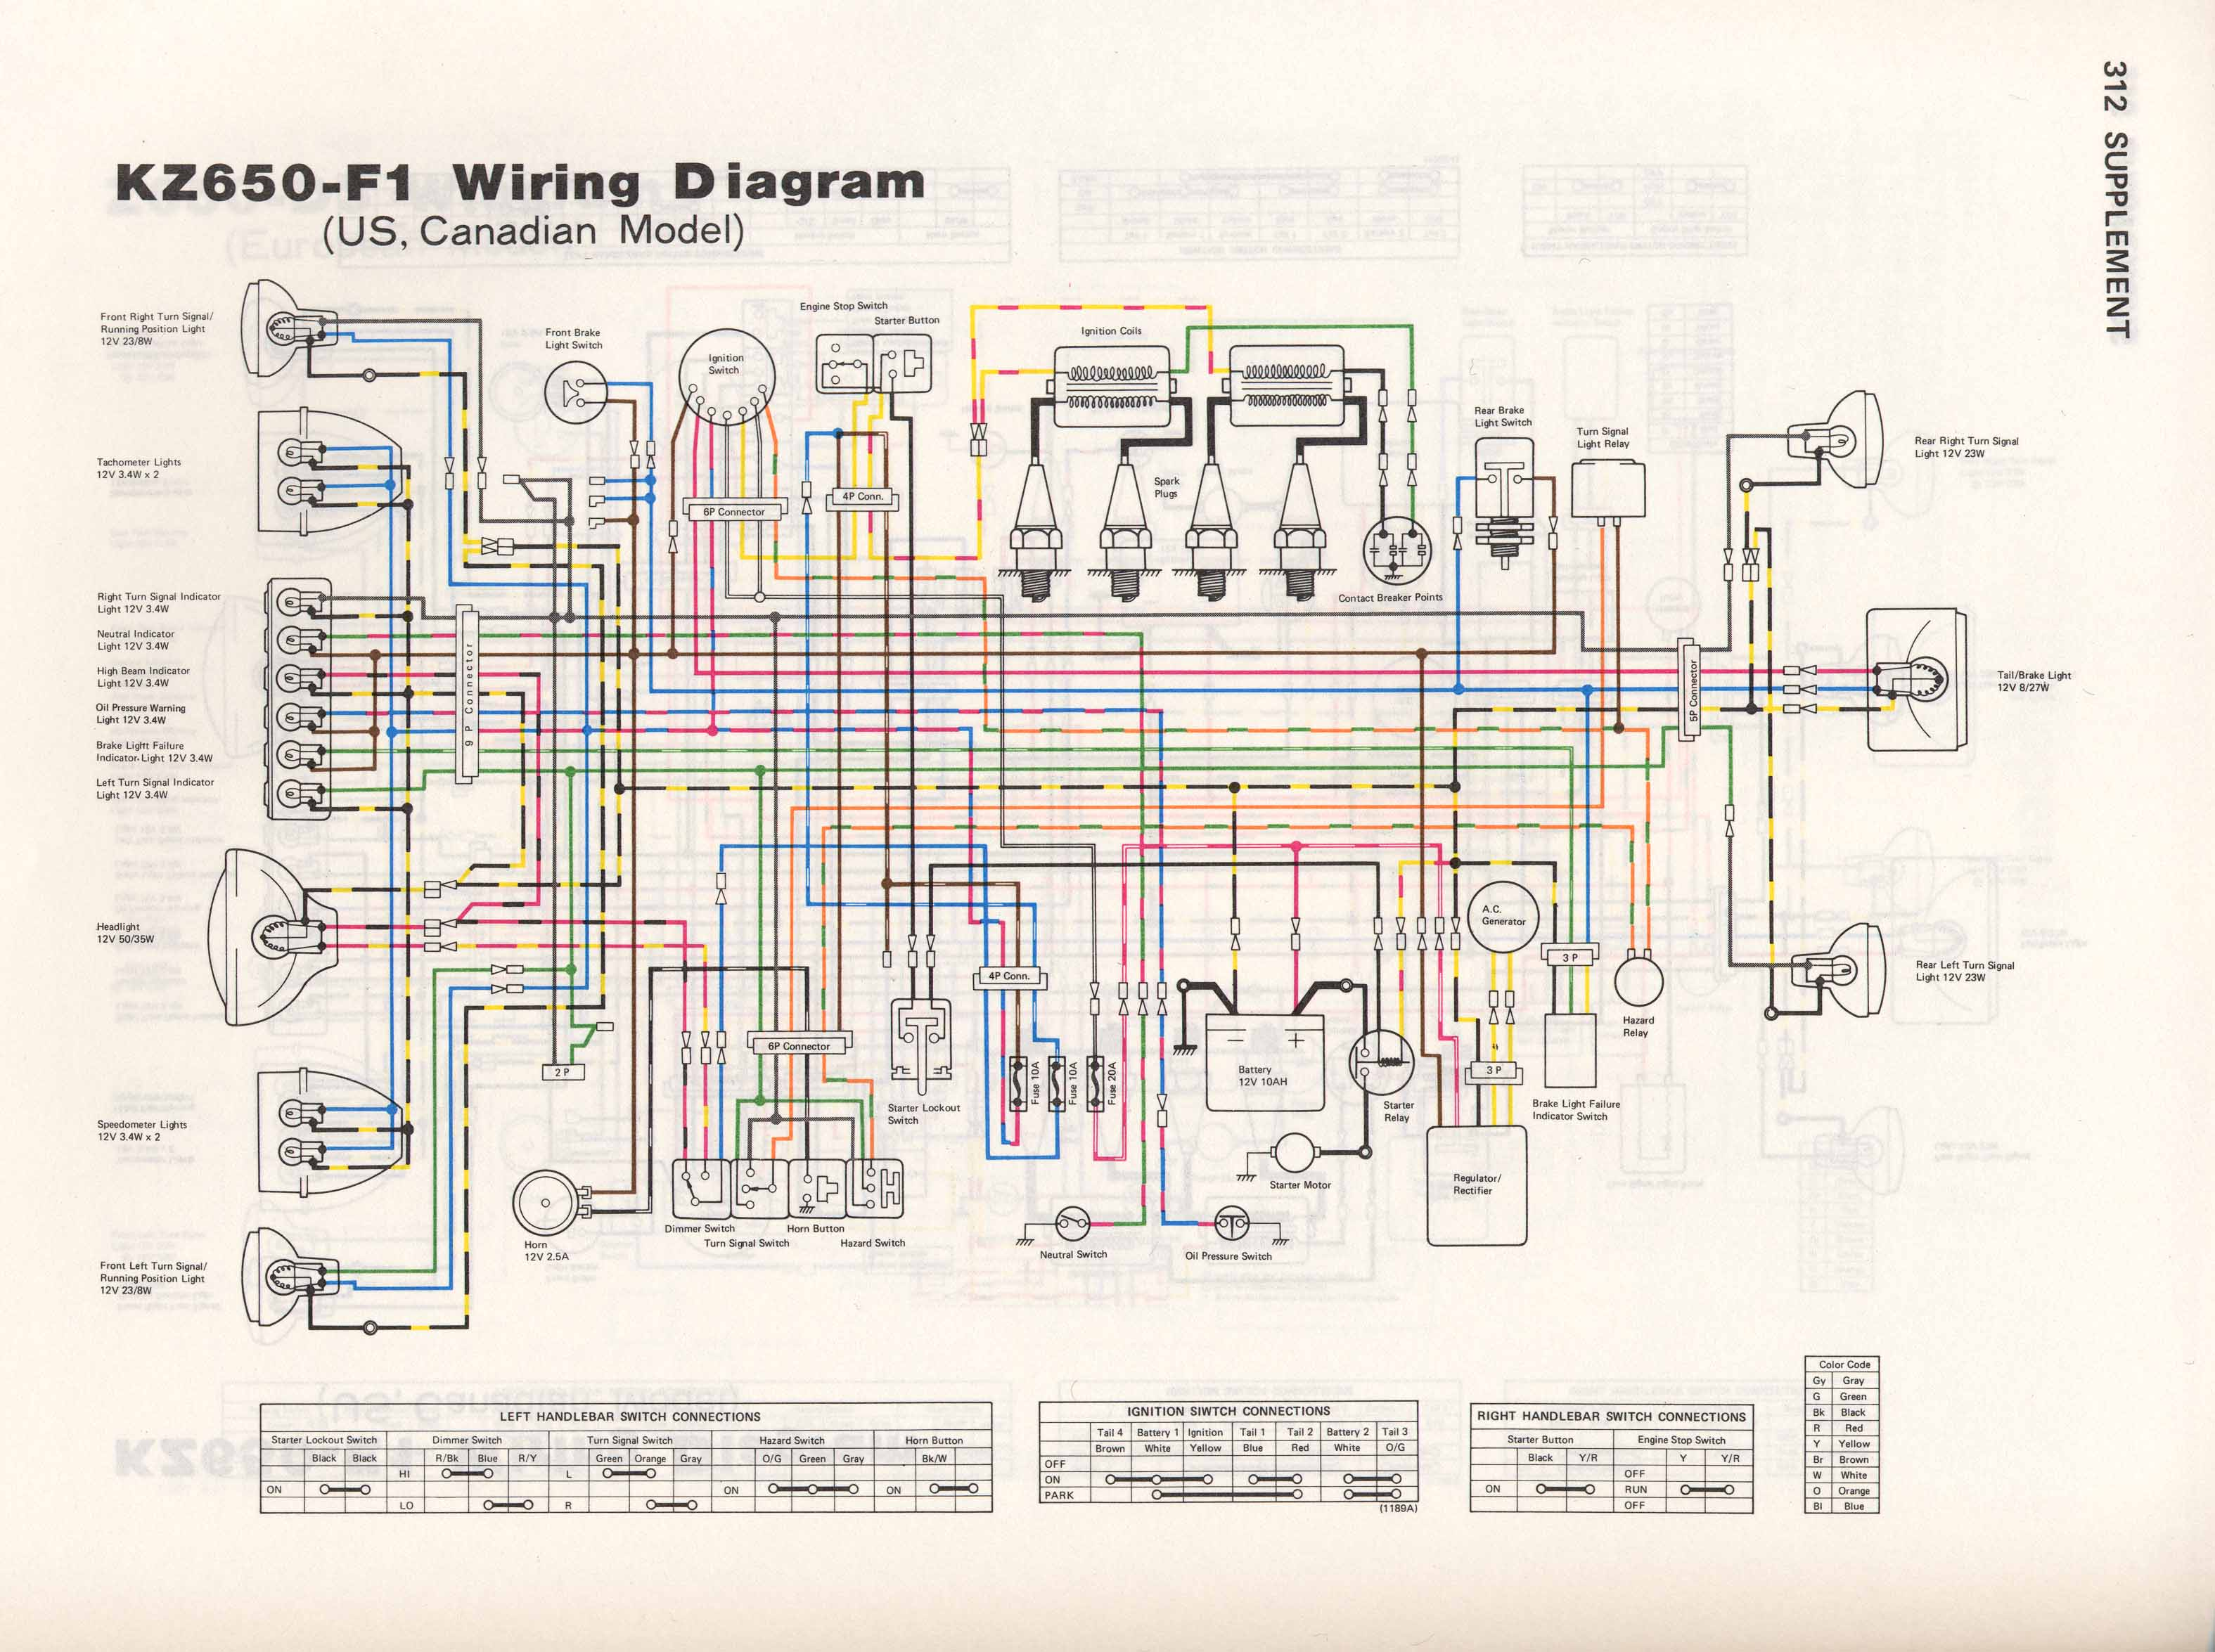 KZ650 F1 kz650 info wiring diagrams kawasaki teryx wiring diagram at honlapkeszites.co